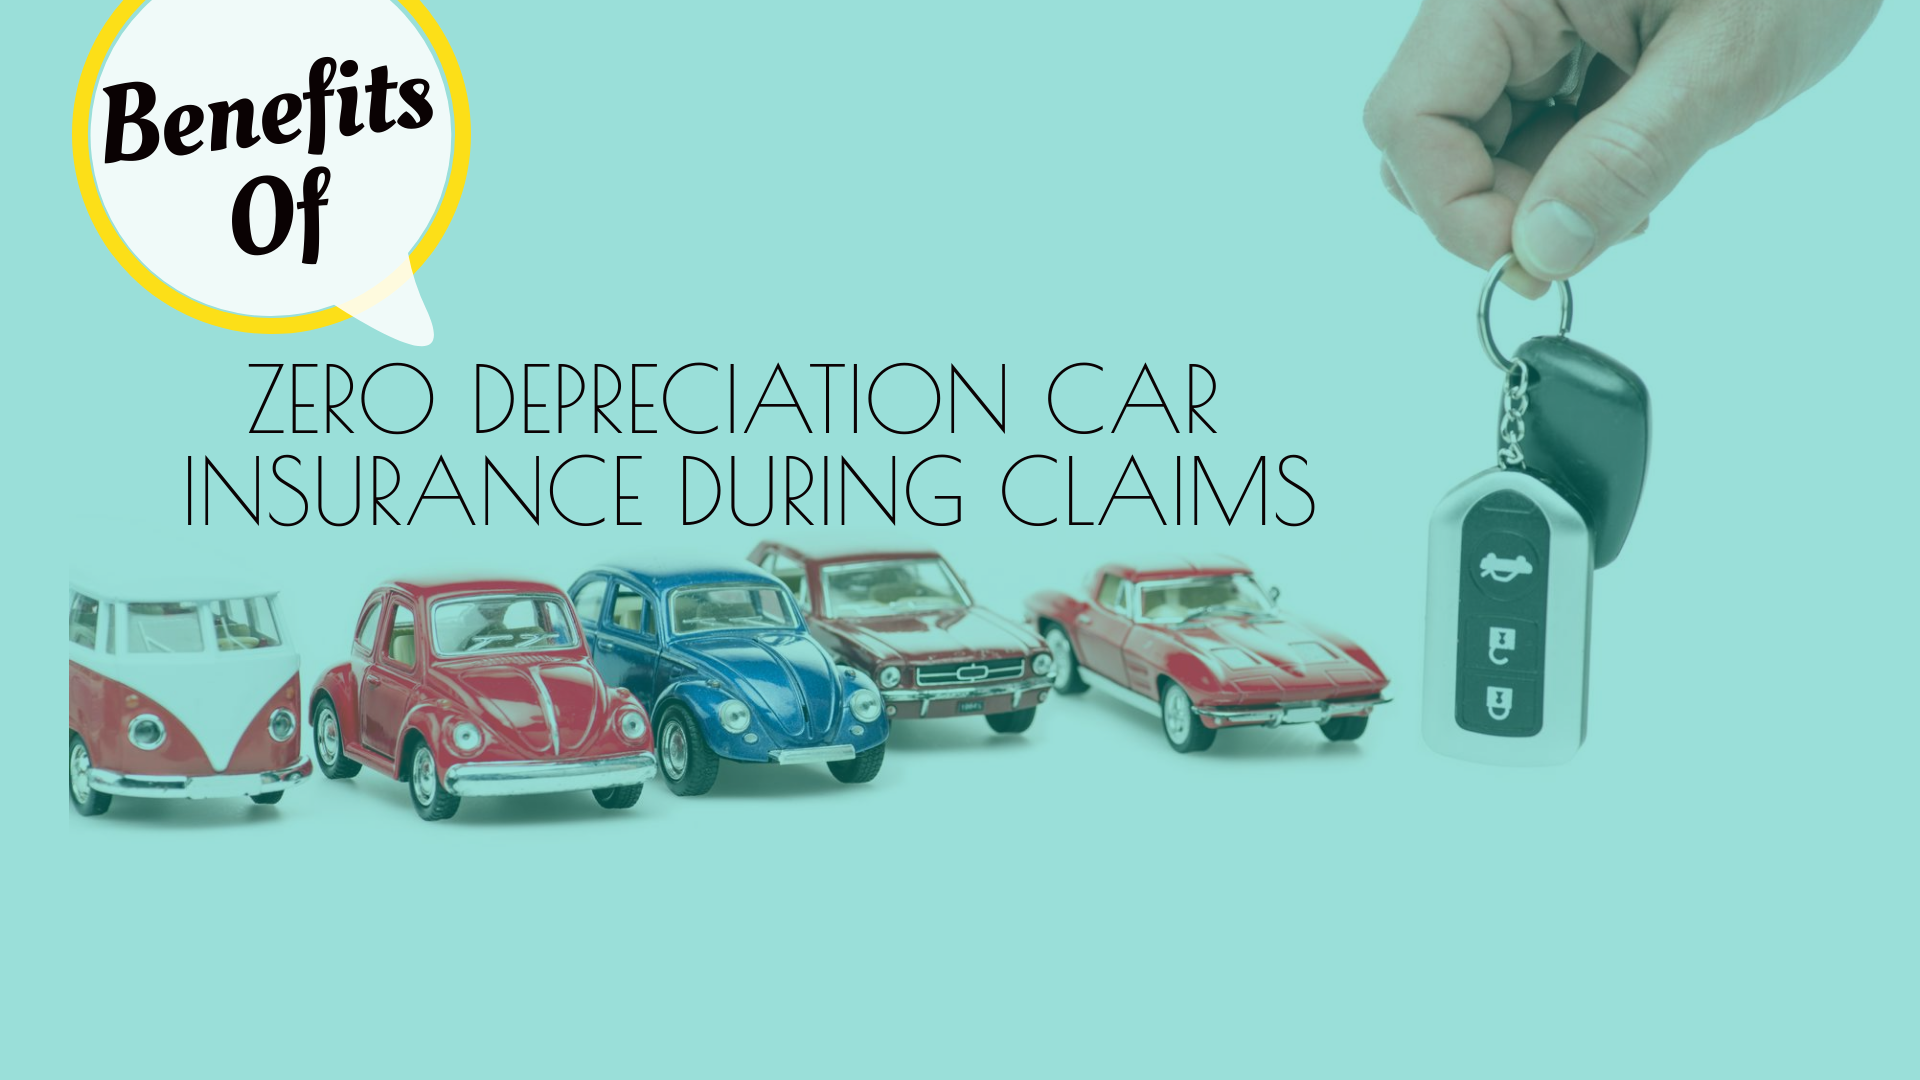 Top benefits of Zero Depreciation Car Insurance during claims